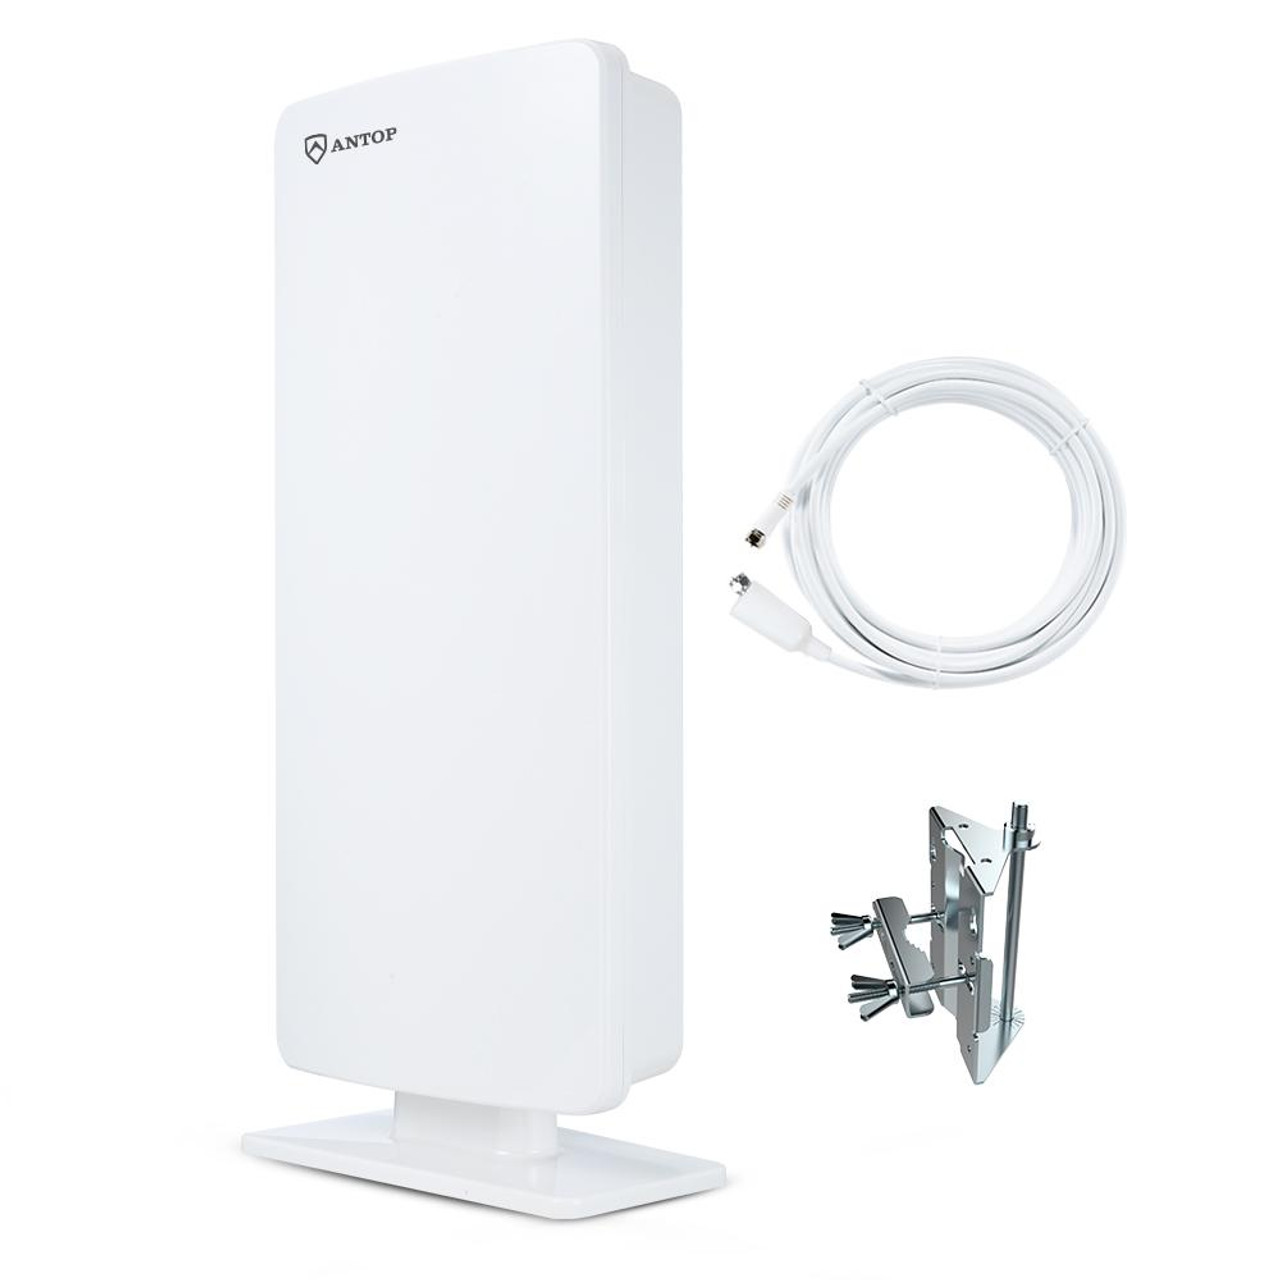 "ANTOP ""Big Boy"" AT-400 Outdoor/Indoor HDTV Antenna 65 Miles Range"